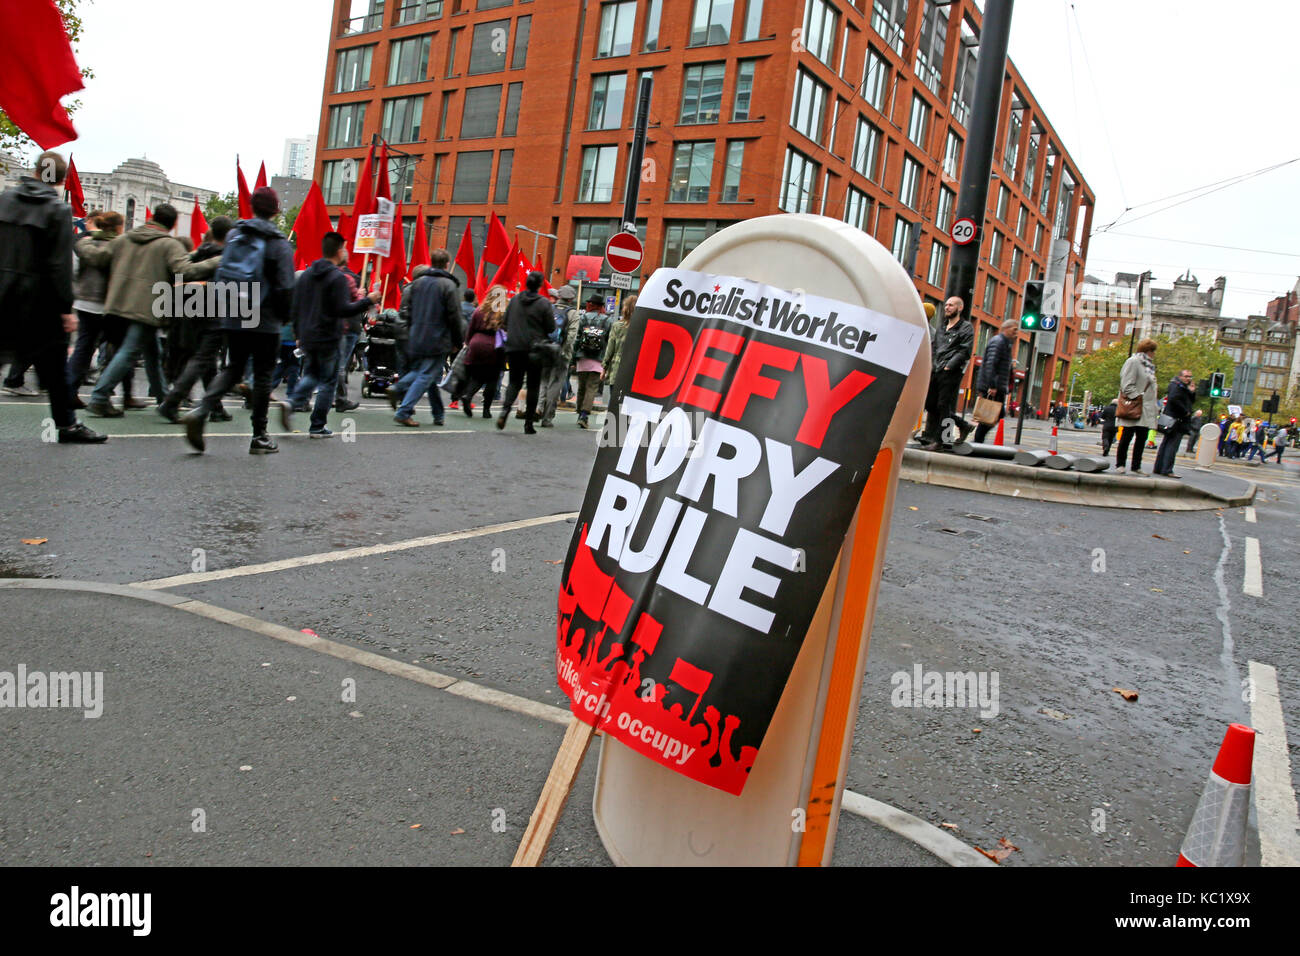 Manchester, UK. 1st October, 2017. A placard which reads 'Defy Tory Rule' leant on a street sign as an anti - Stock Image